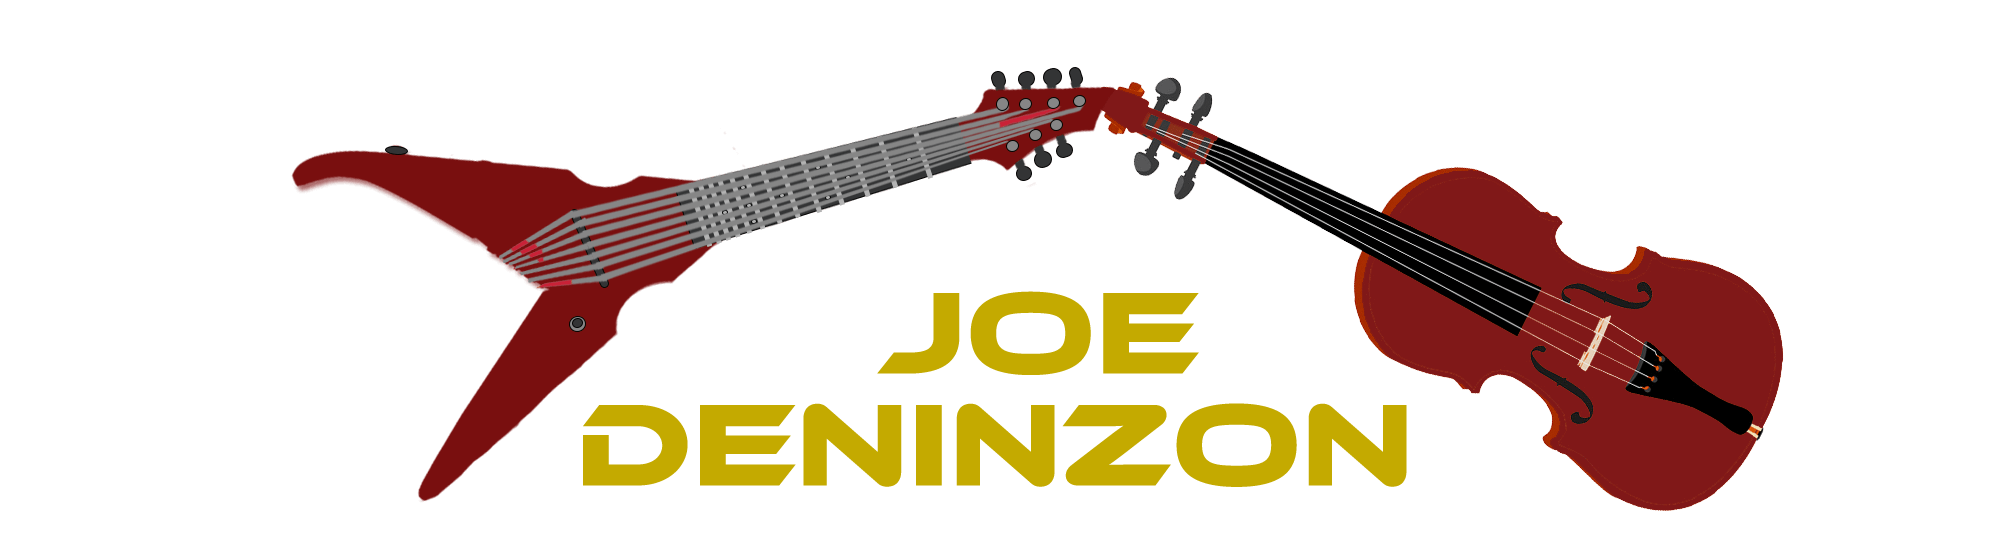 Joe Deninzon